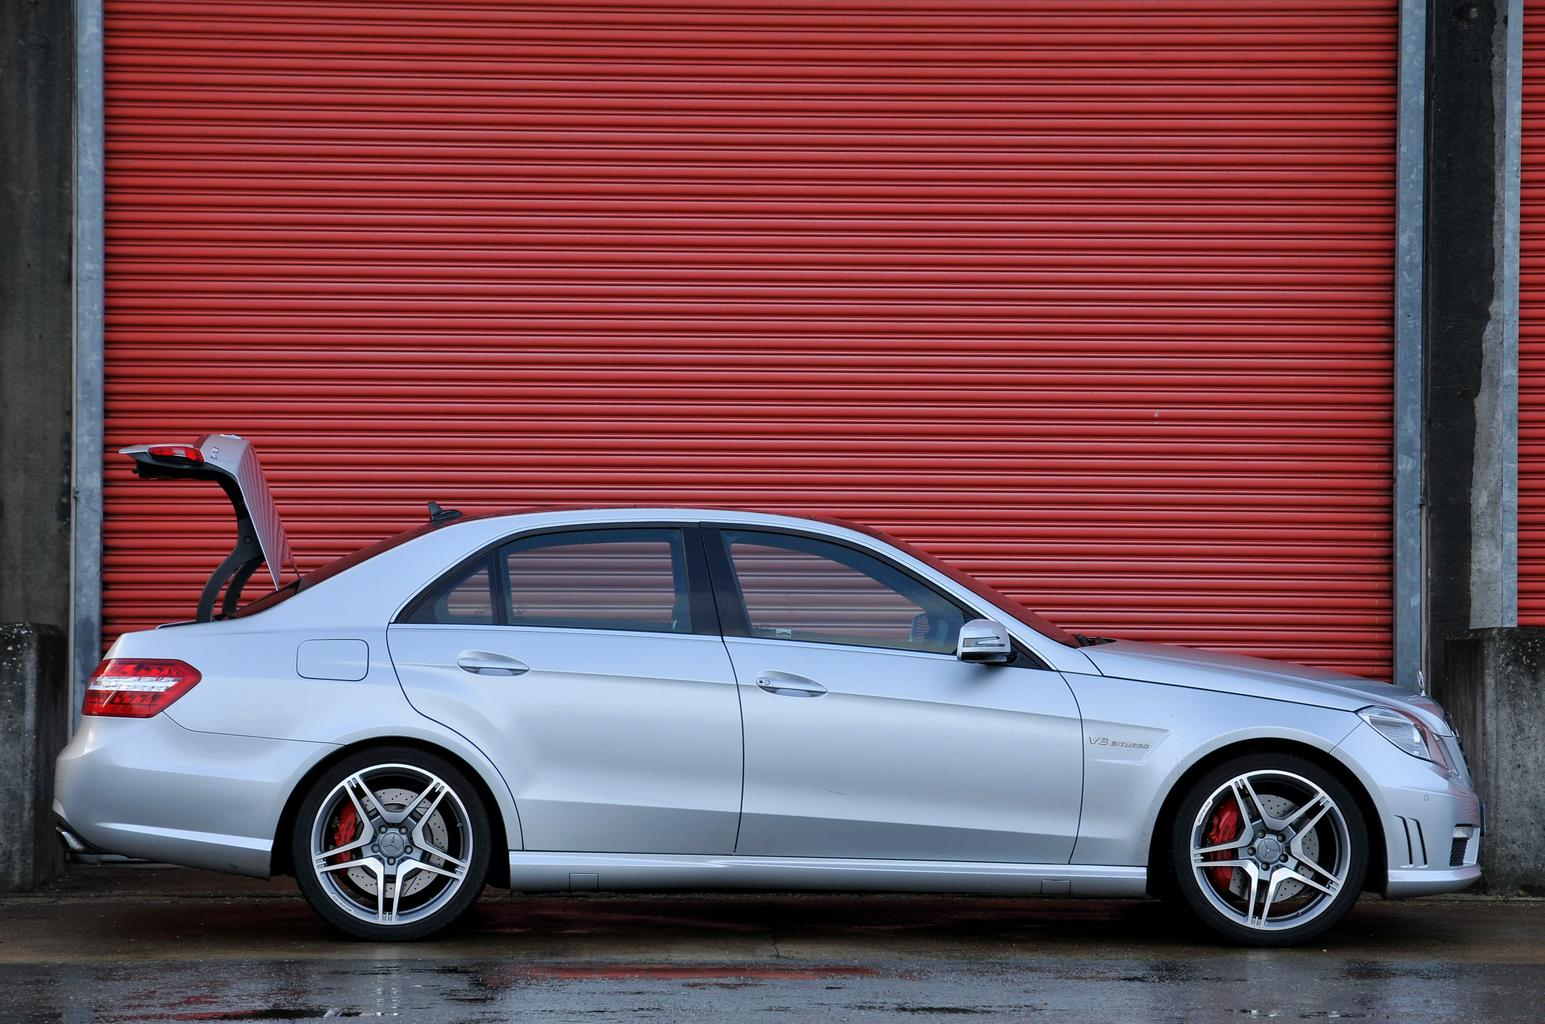 Used test – super saloons: BMW M5 vs Mercedes E63 AMG